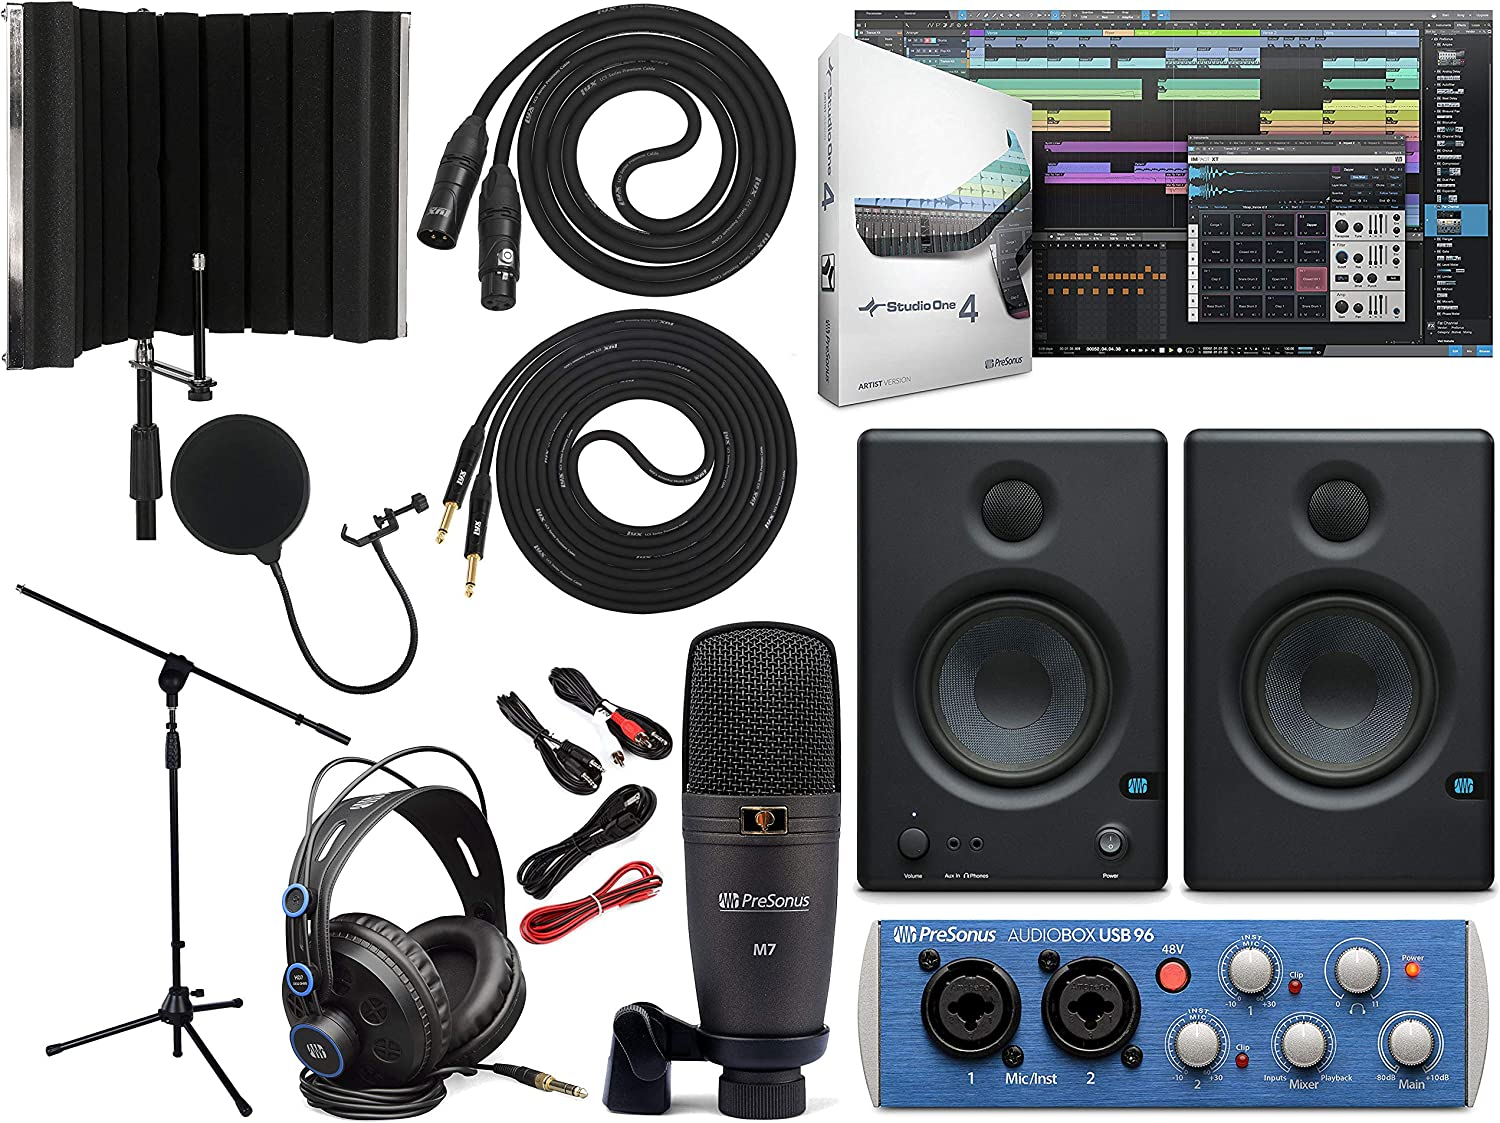 Presonus AudioBox 96 Audio Interface (May Vary Blue or Black) Full Studio Bundle with Studio One Artist Software Pack with Eris 4.5 Pair Studio Monitors, Instrument Cable, Microphone Isolation Shield